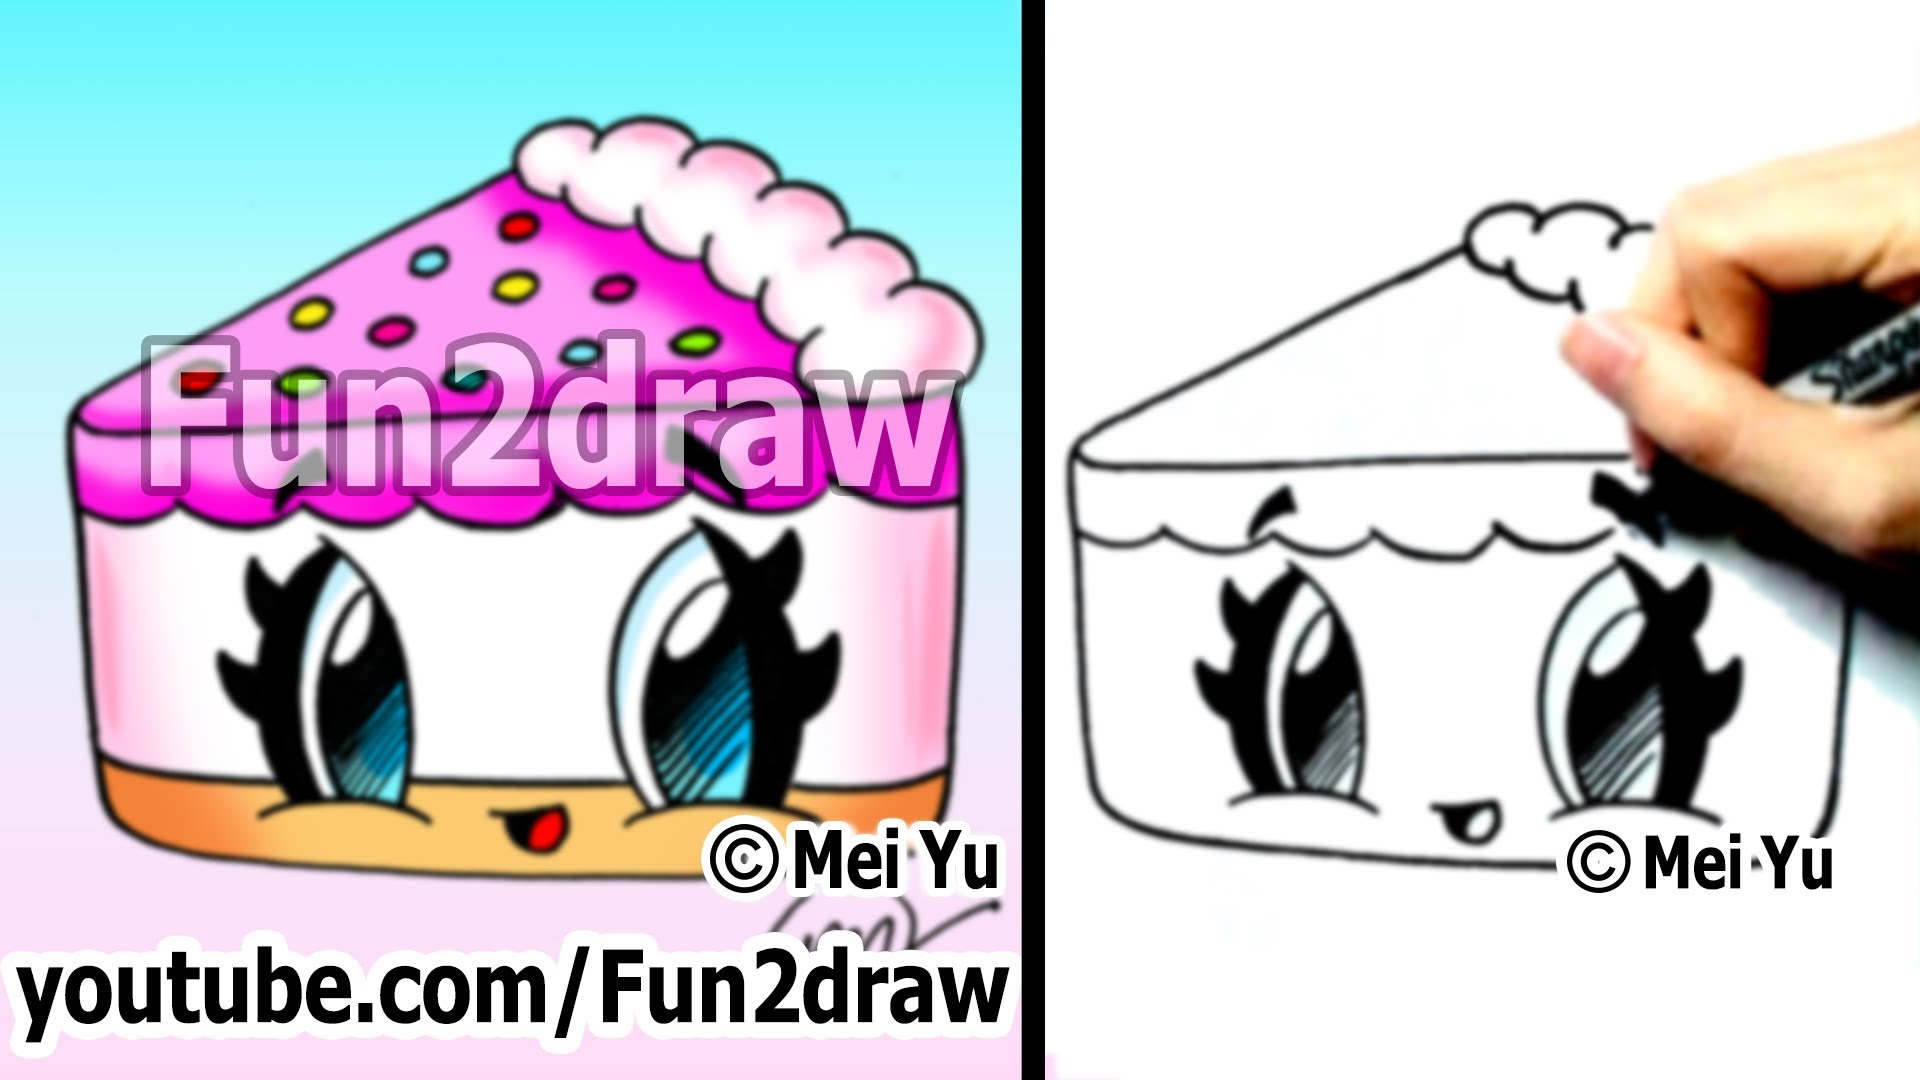 Drawn strawberry cool easy fun Cake to How Cartoons Draw